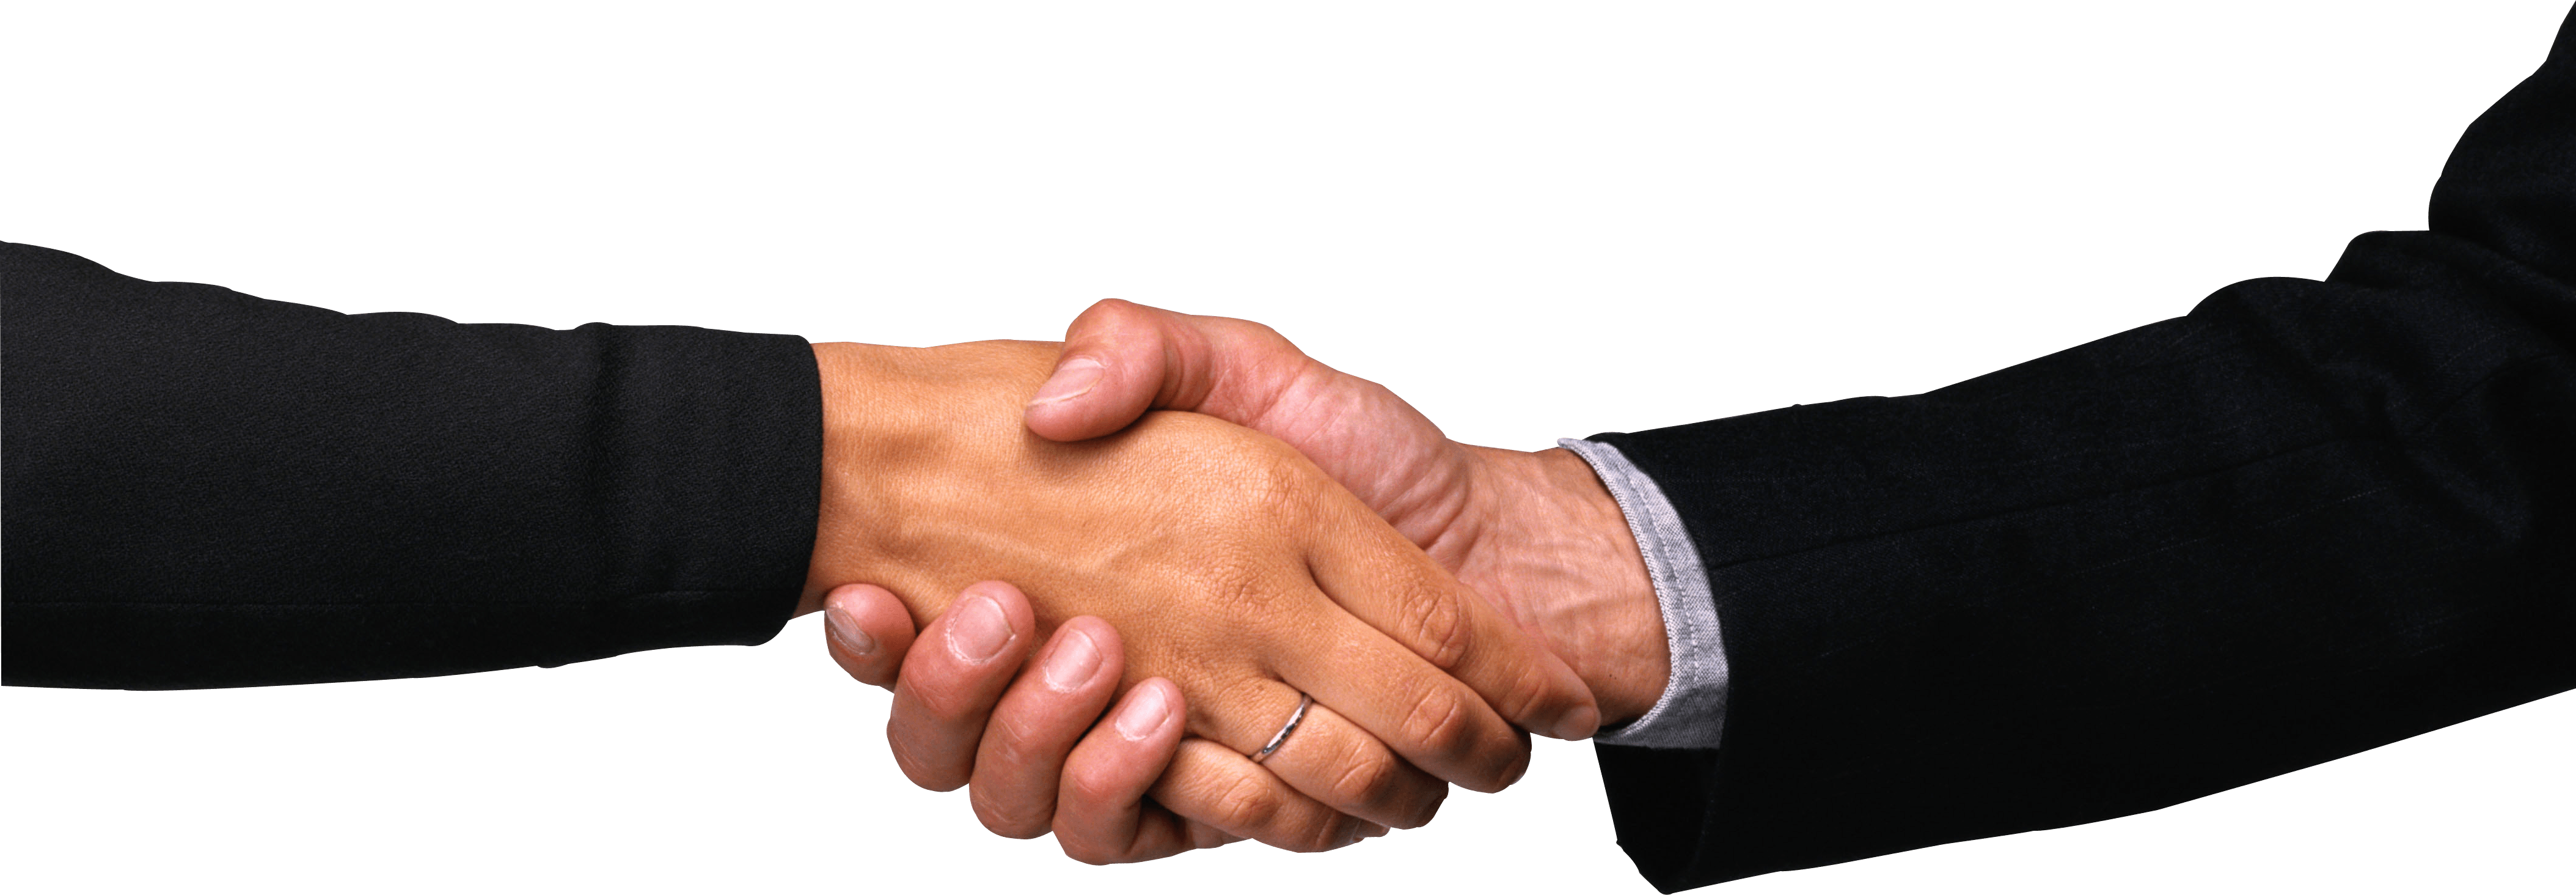 Png hd transparent images. Handshake clipart two hand